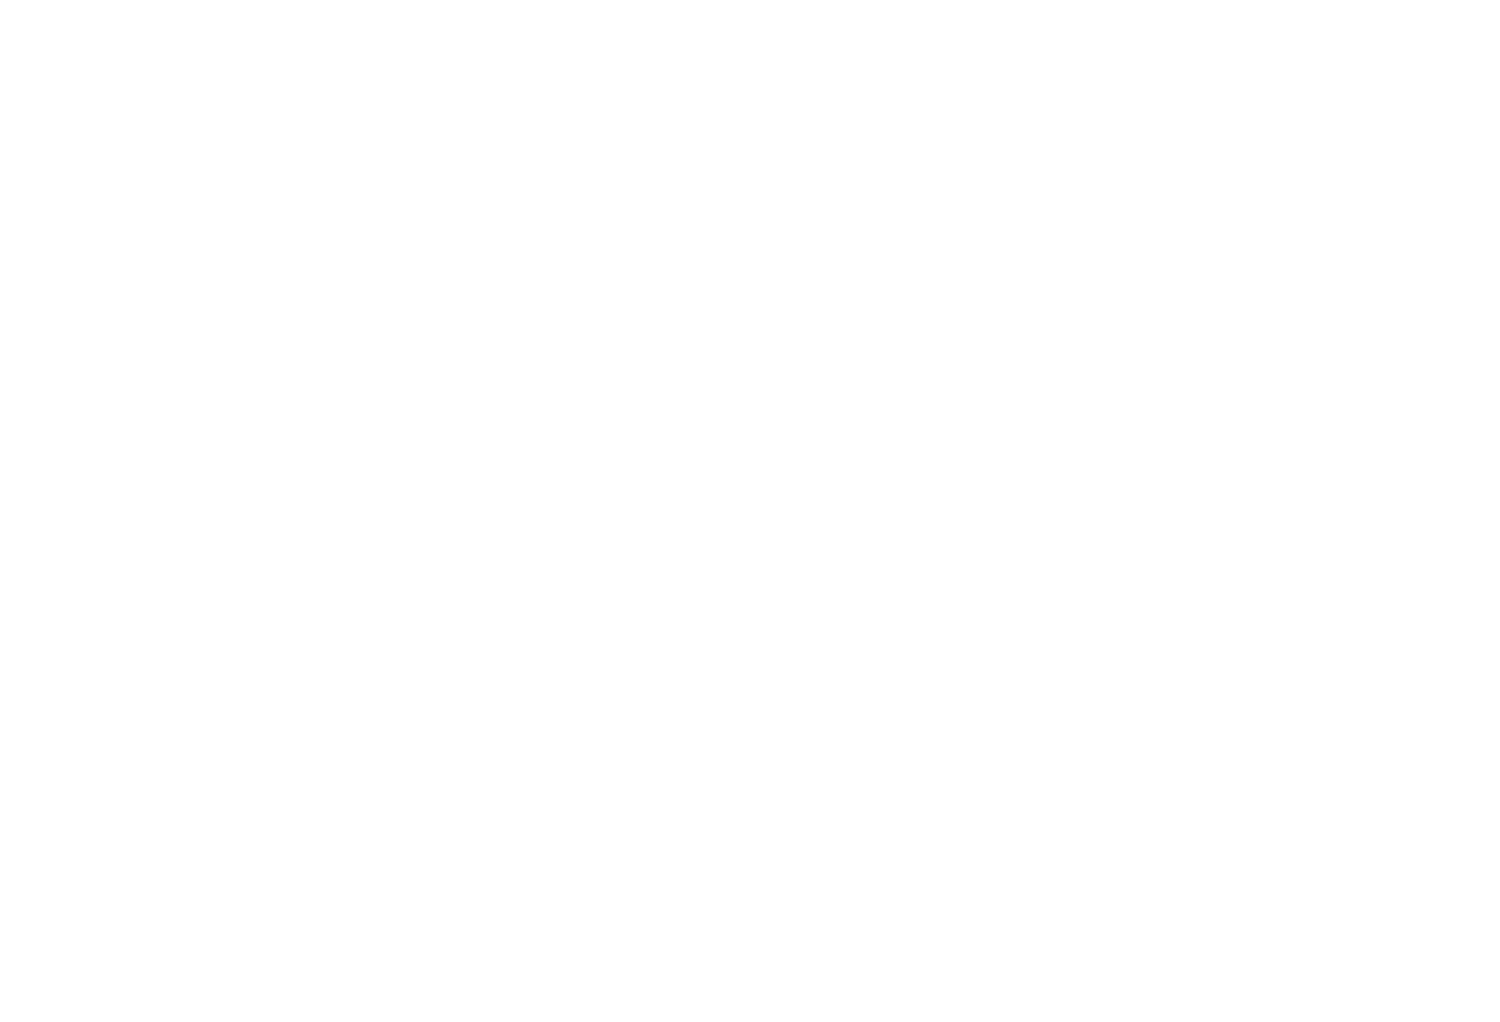 Silver Tree